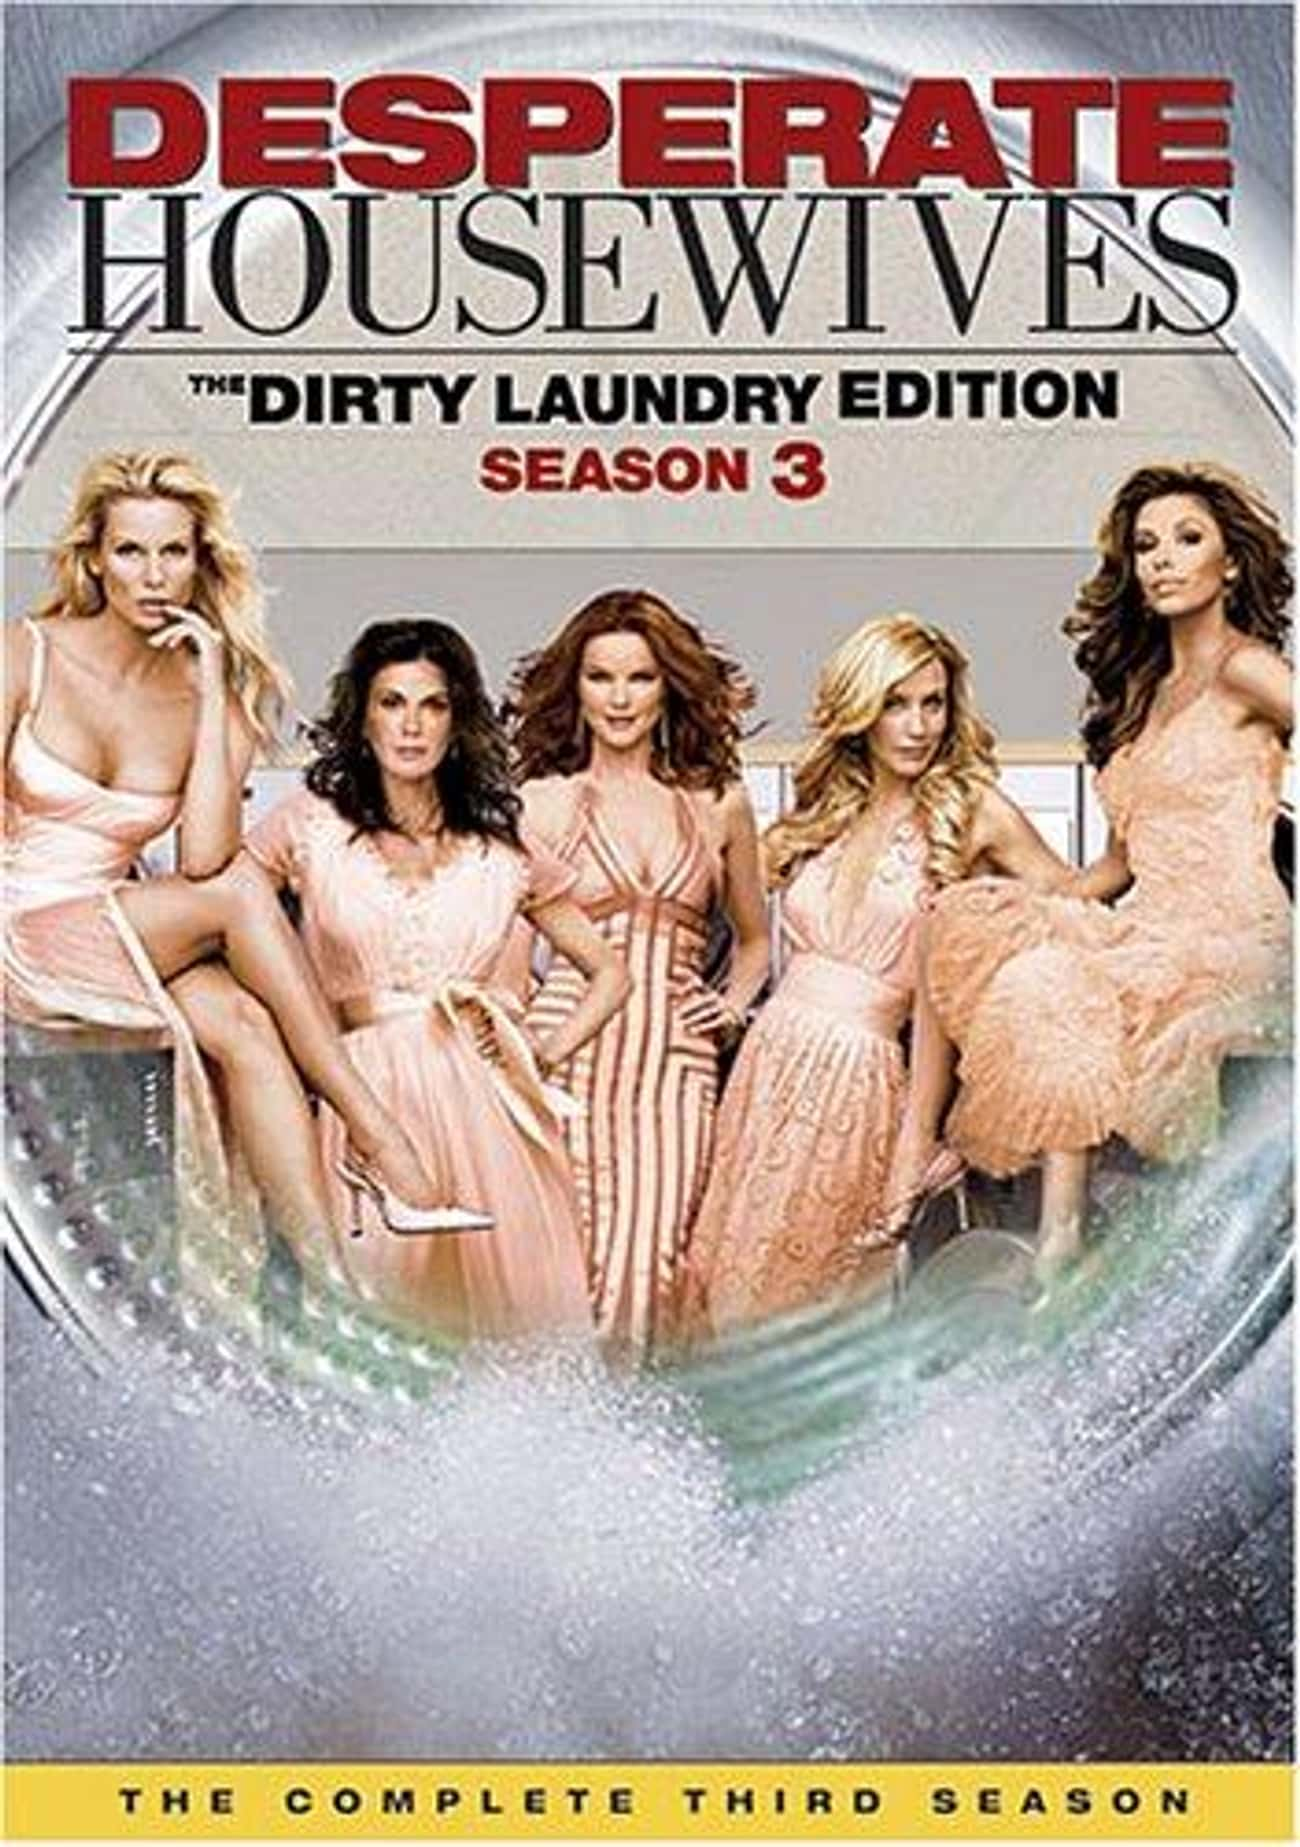 Desperate Housewives - Season  is listed (or ranked) 3 on the list The Best Seasons of Desperate Housewives